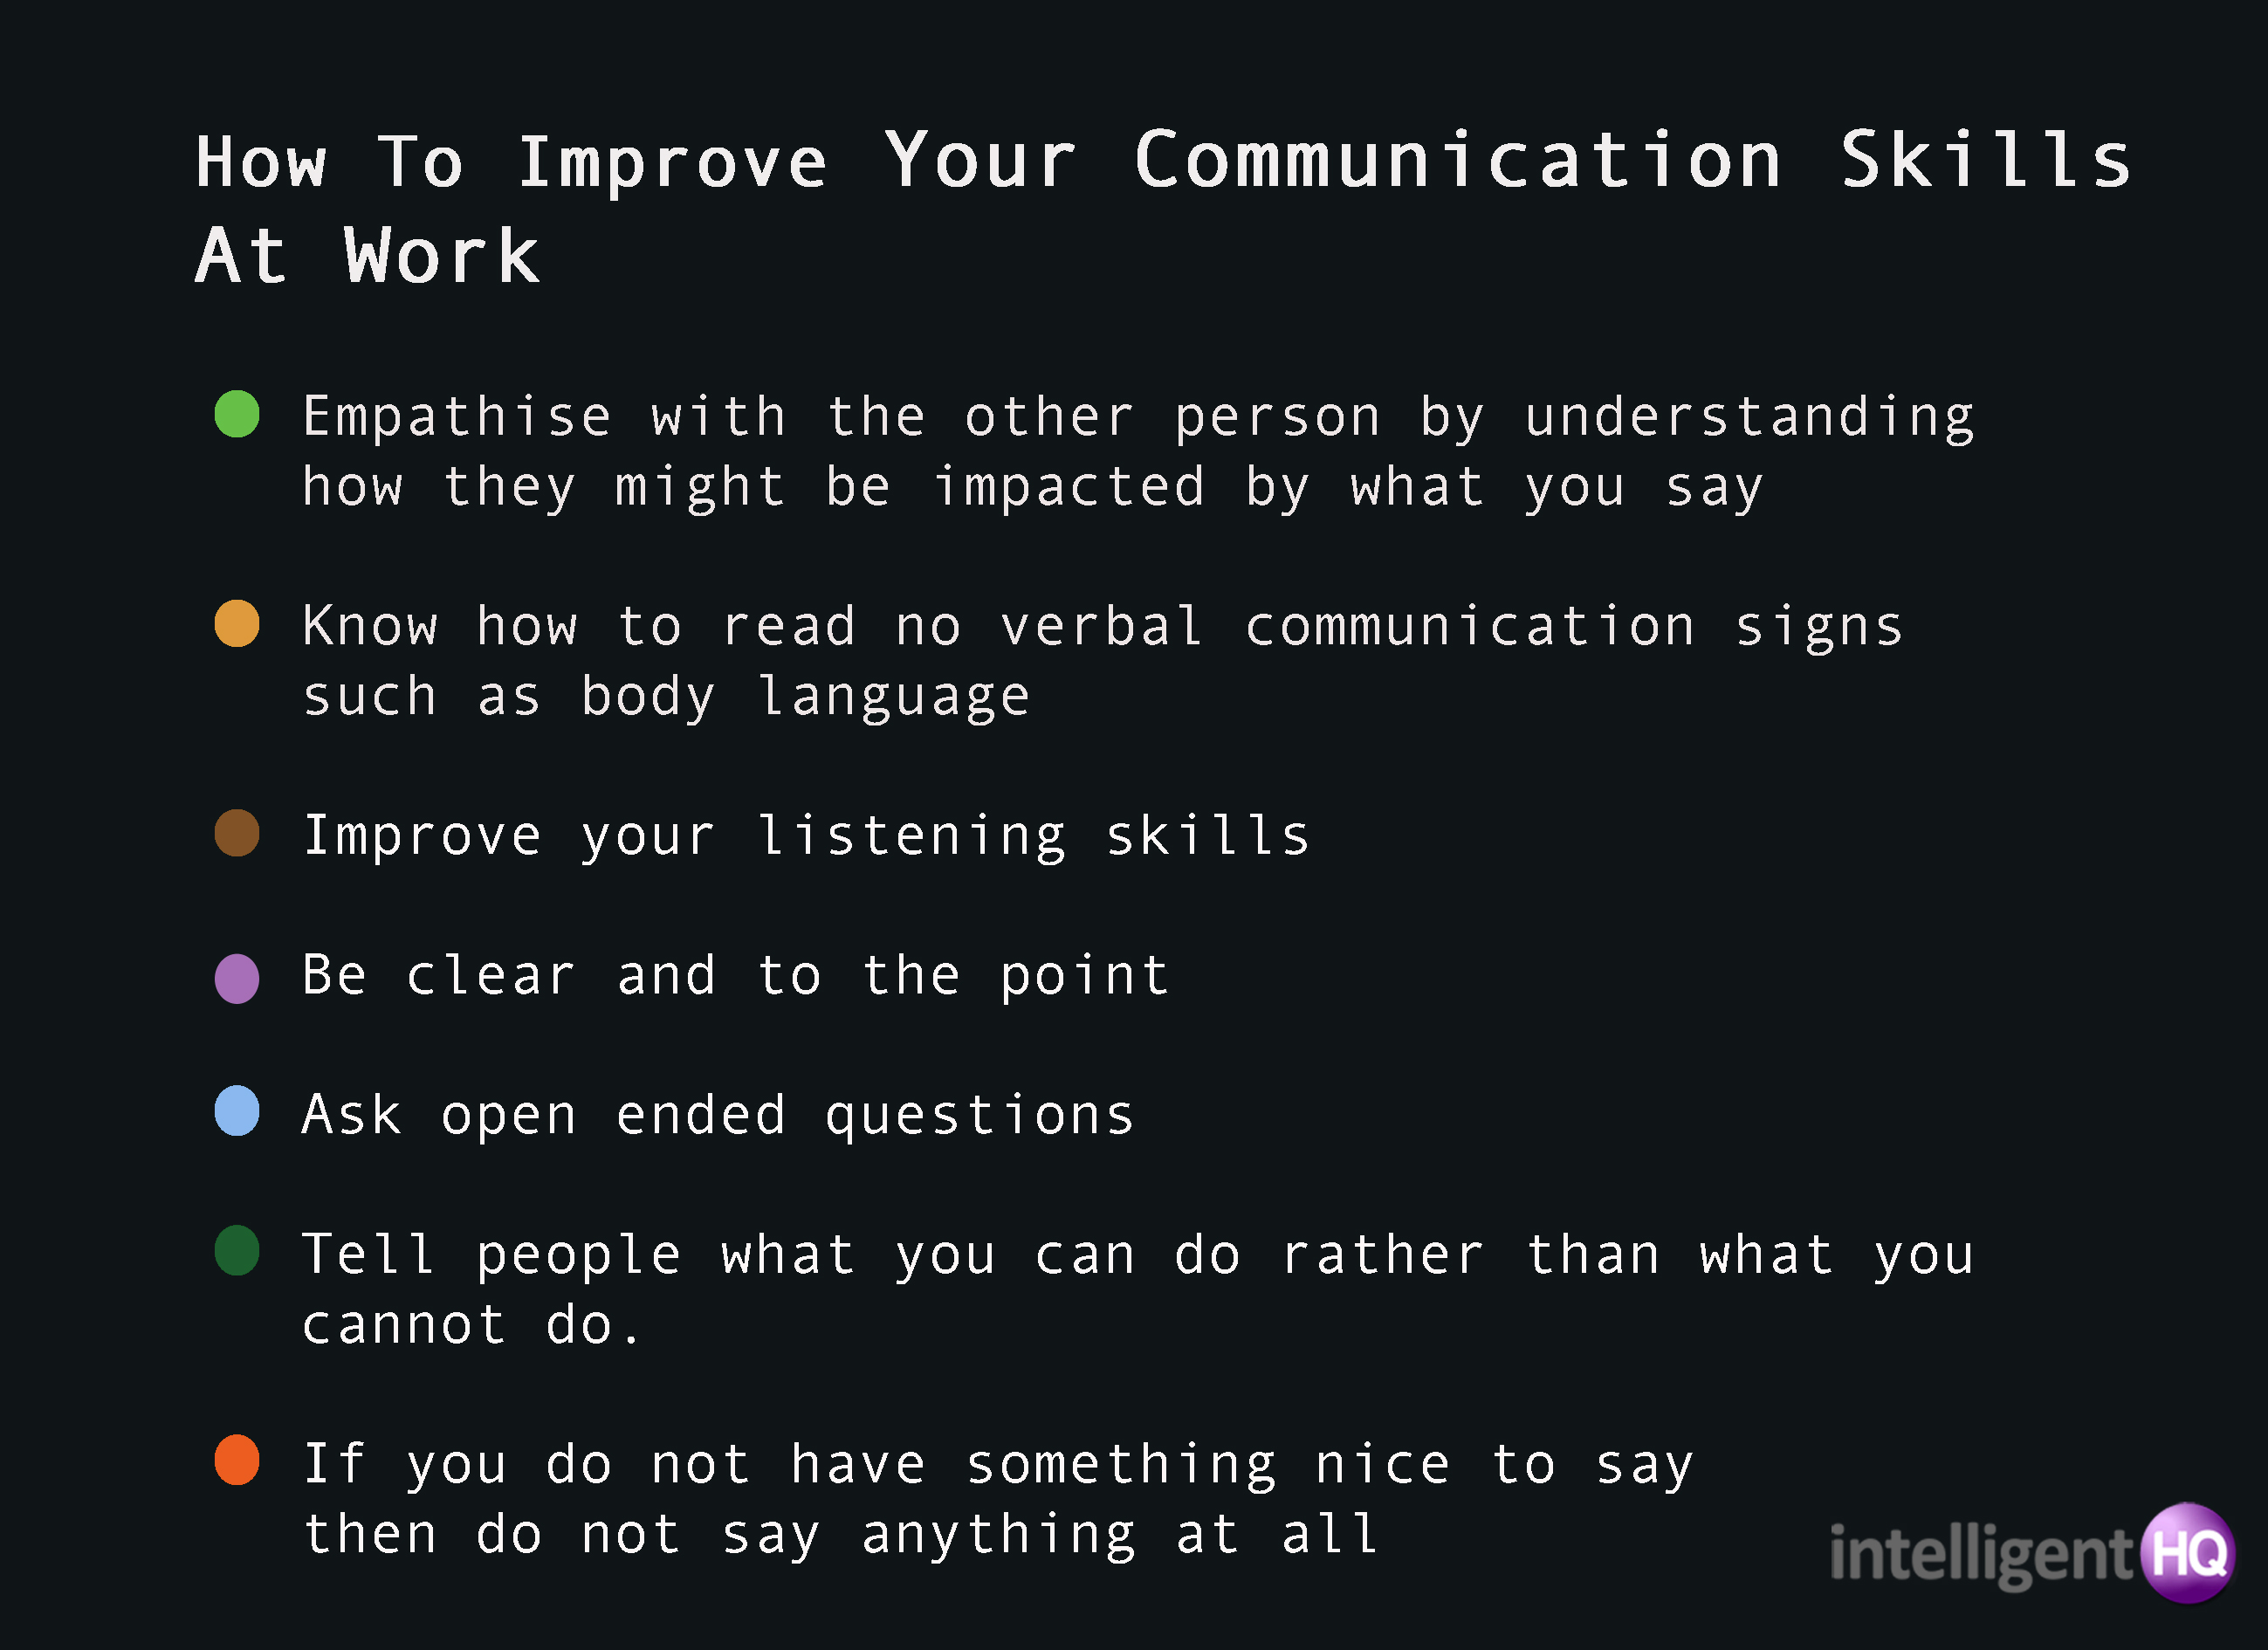 speaking skills in communication